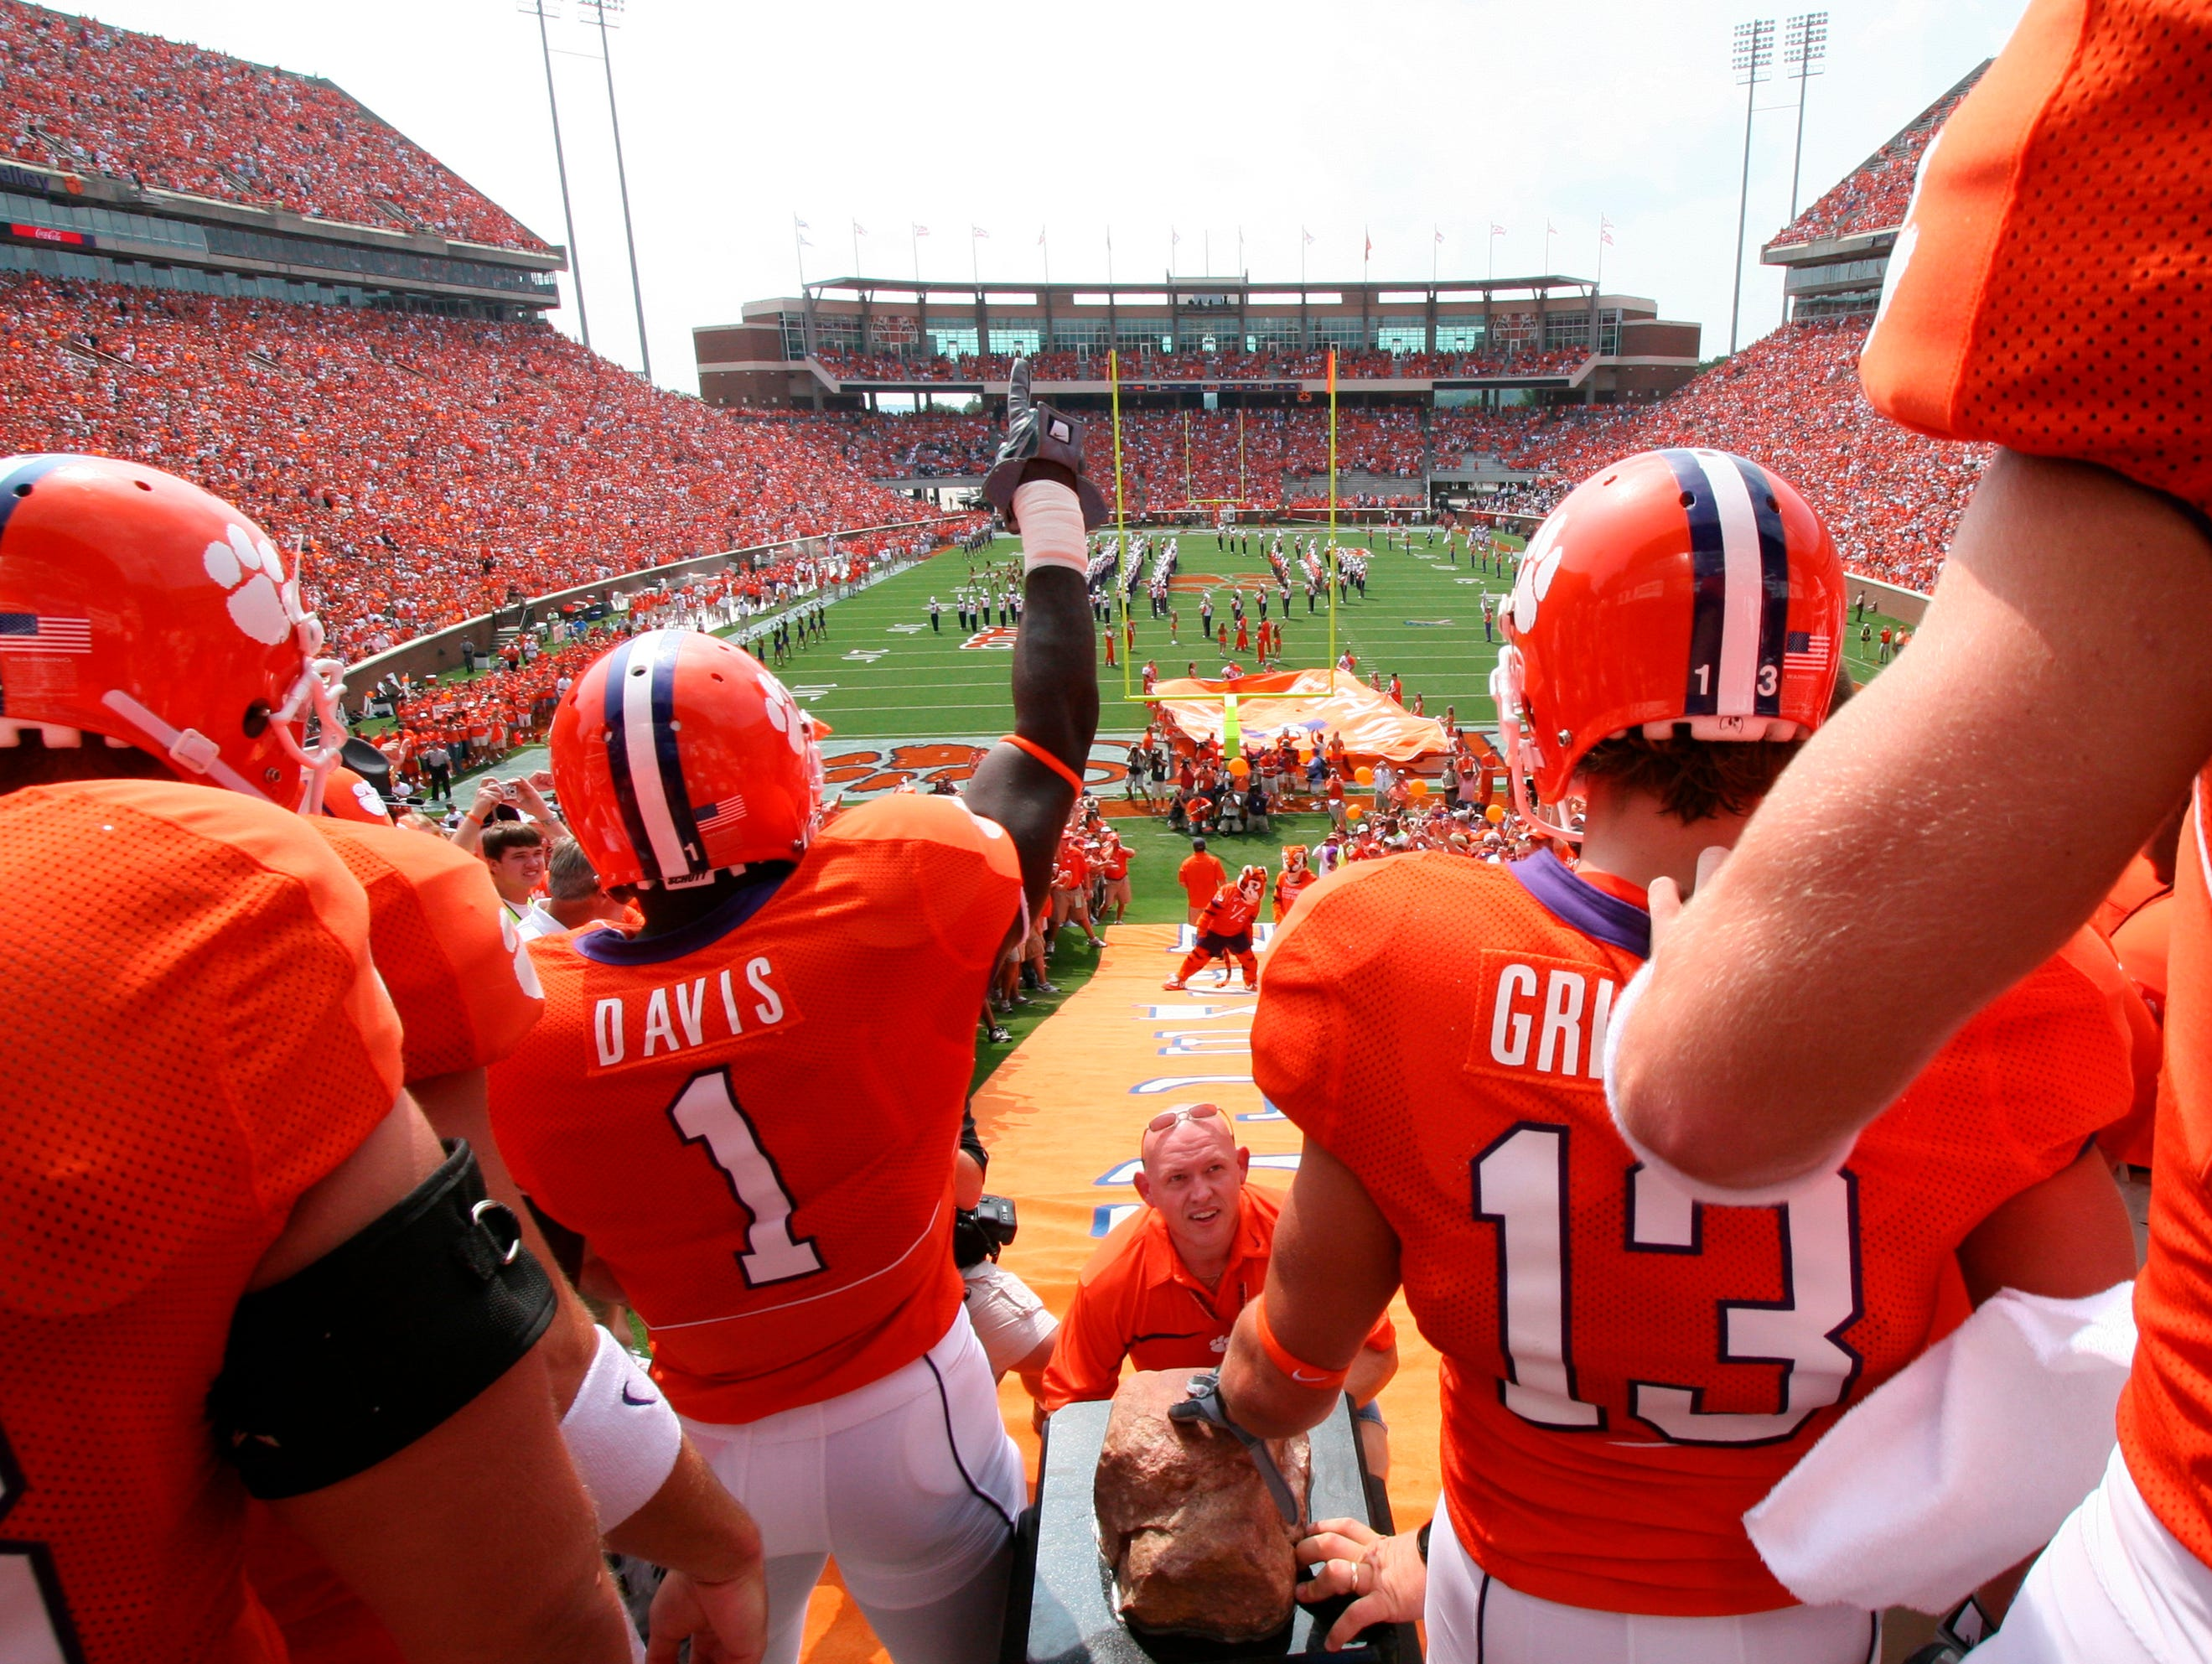 Memorial Stadium, Clemson: Dubbed the 25 most exciting seconds in college football, the Tigers gather at the top of a hill and each player touches Howard's Rock as he sprints down to the field.